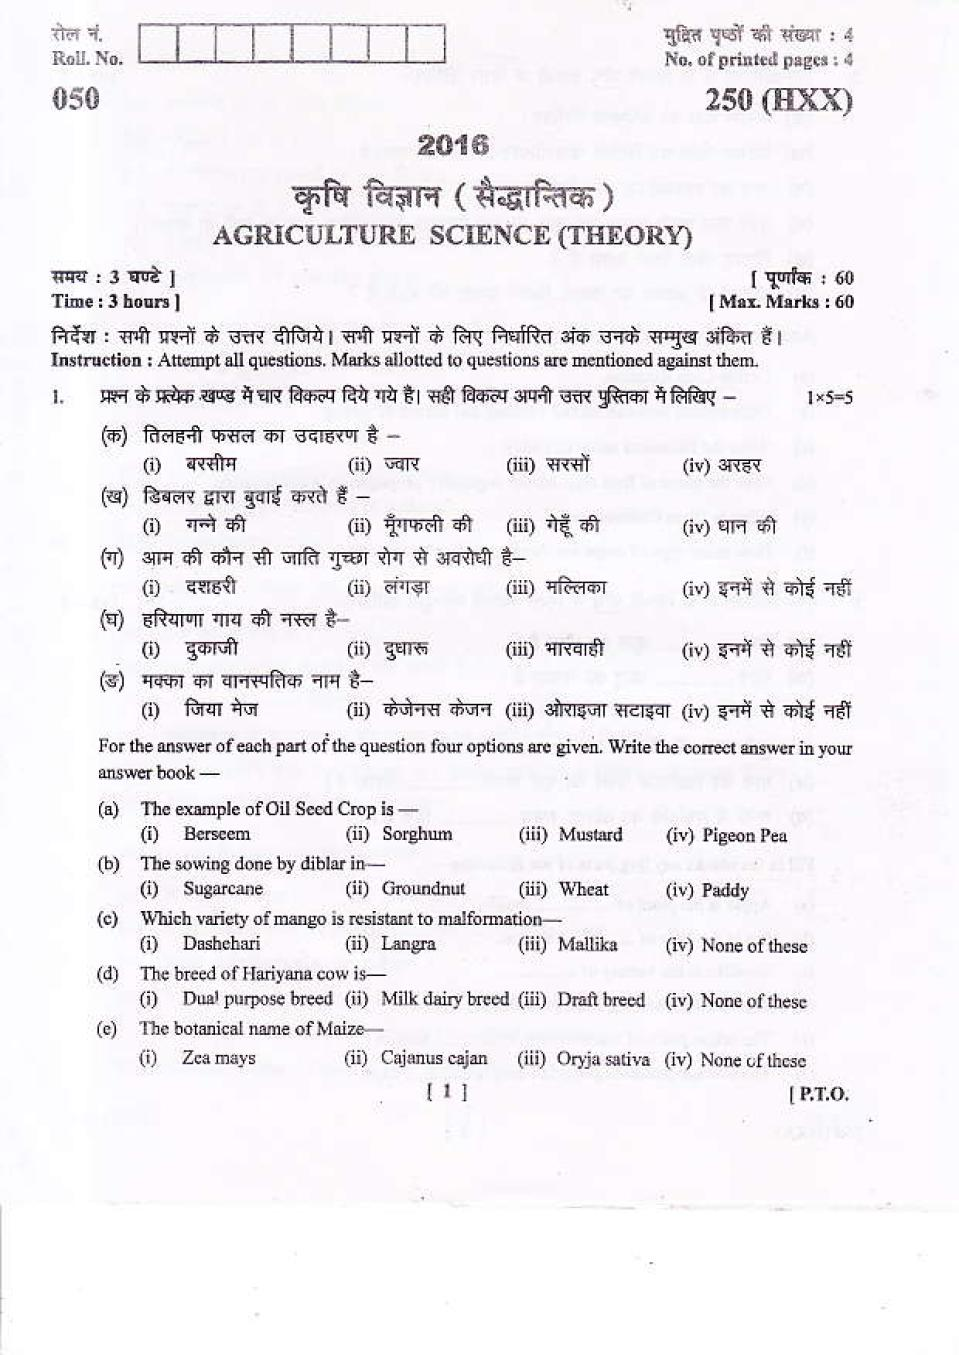 Uttarakhand Board Question Paper Class 10 - Agriculture Science